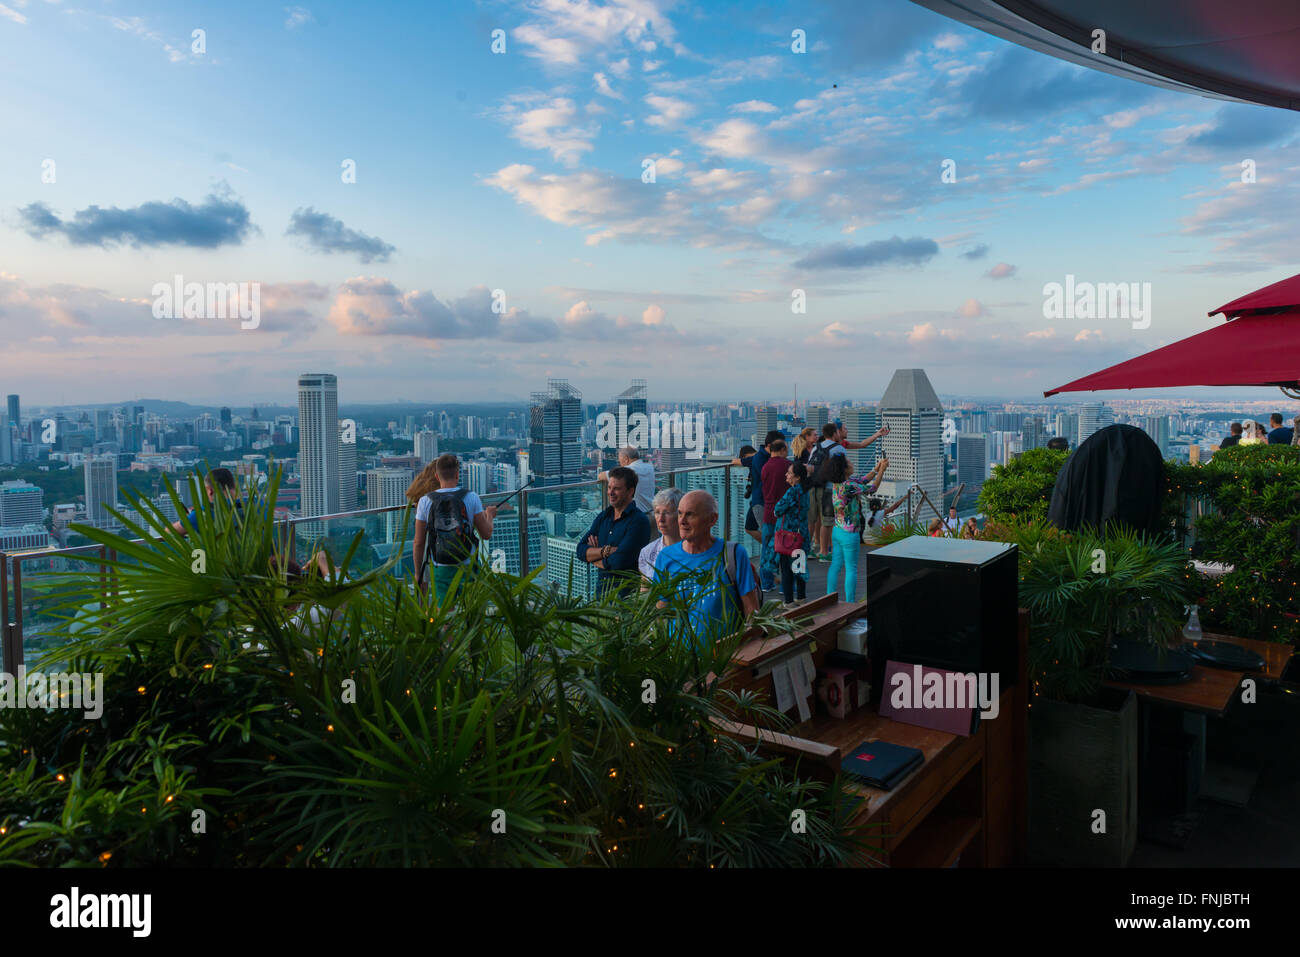 Skypark observation deck and Sky Bar Ce La Vi In Marina Bay Sands hotel, Singapore - Stock Image